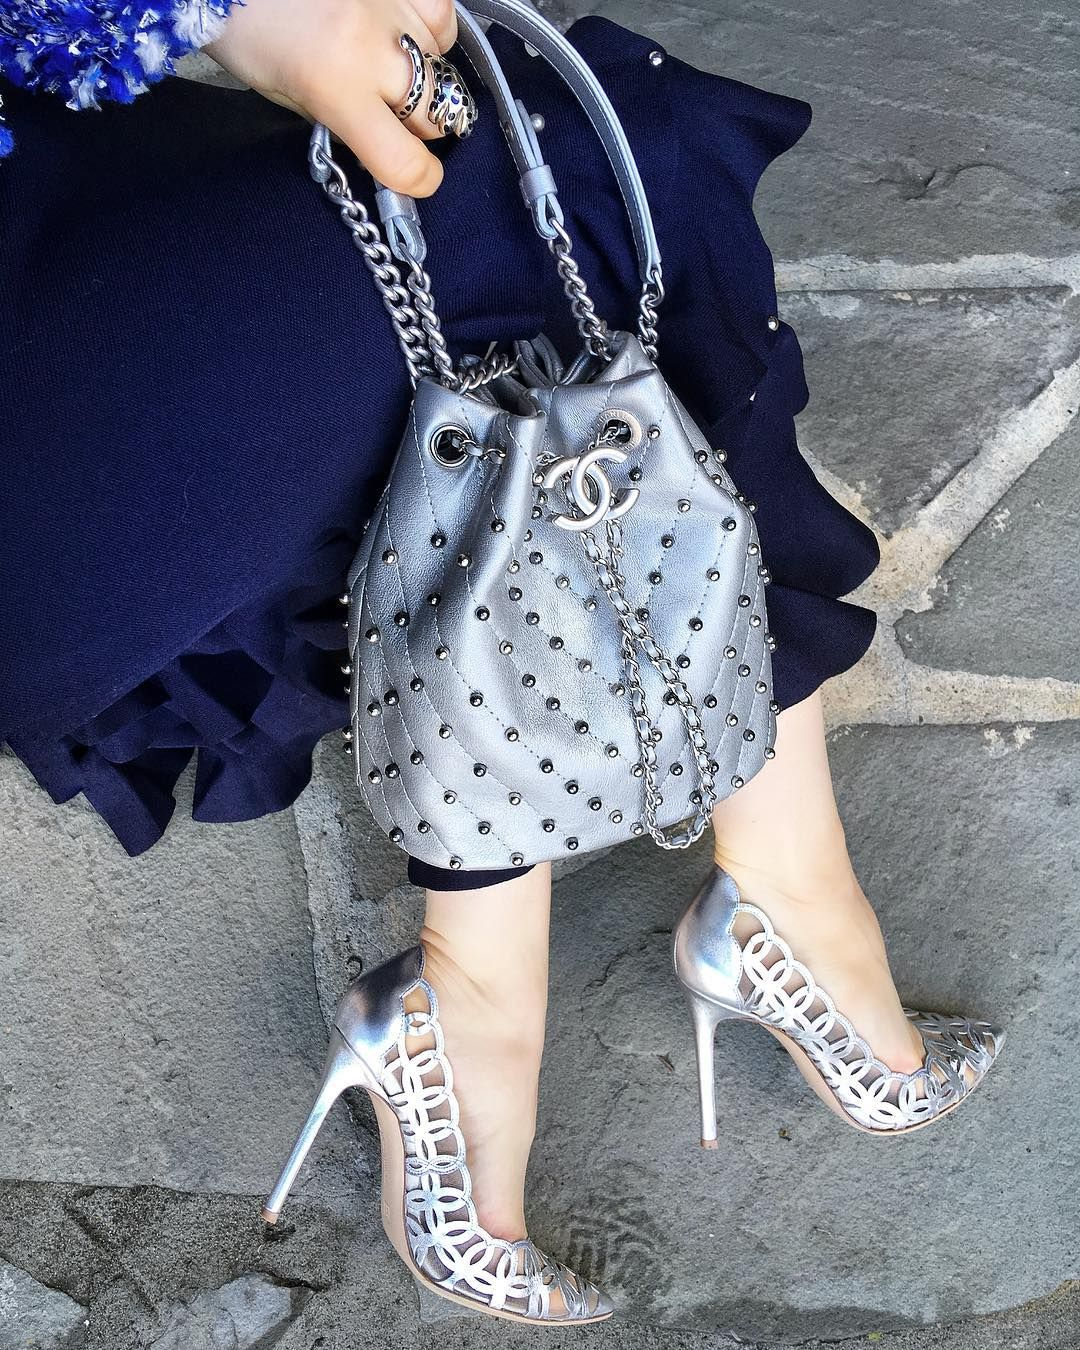 Bagsoftpf Hold On To Your Hats Because This Reader S Collection Will Give You Some Serious Bag Envy Purseblog Shoe Boots Fashion Handbags Shoes